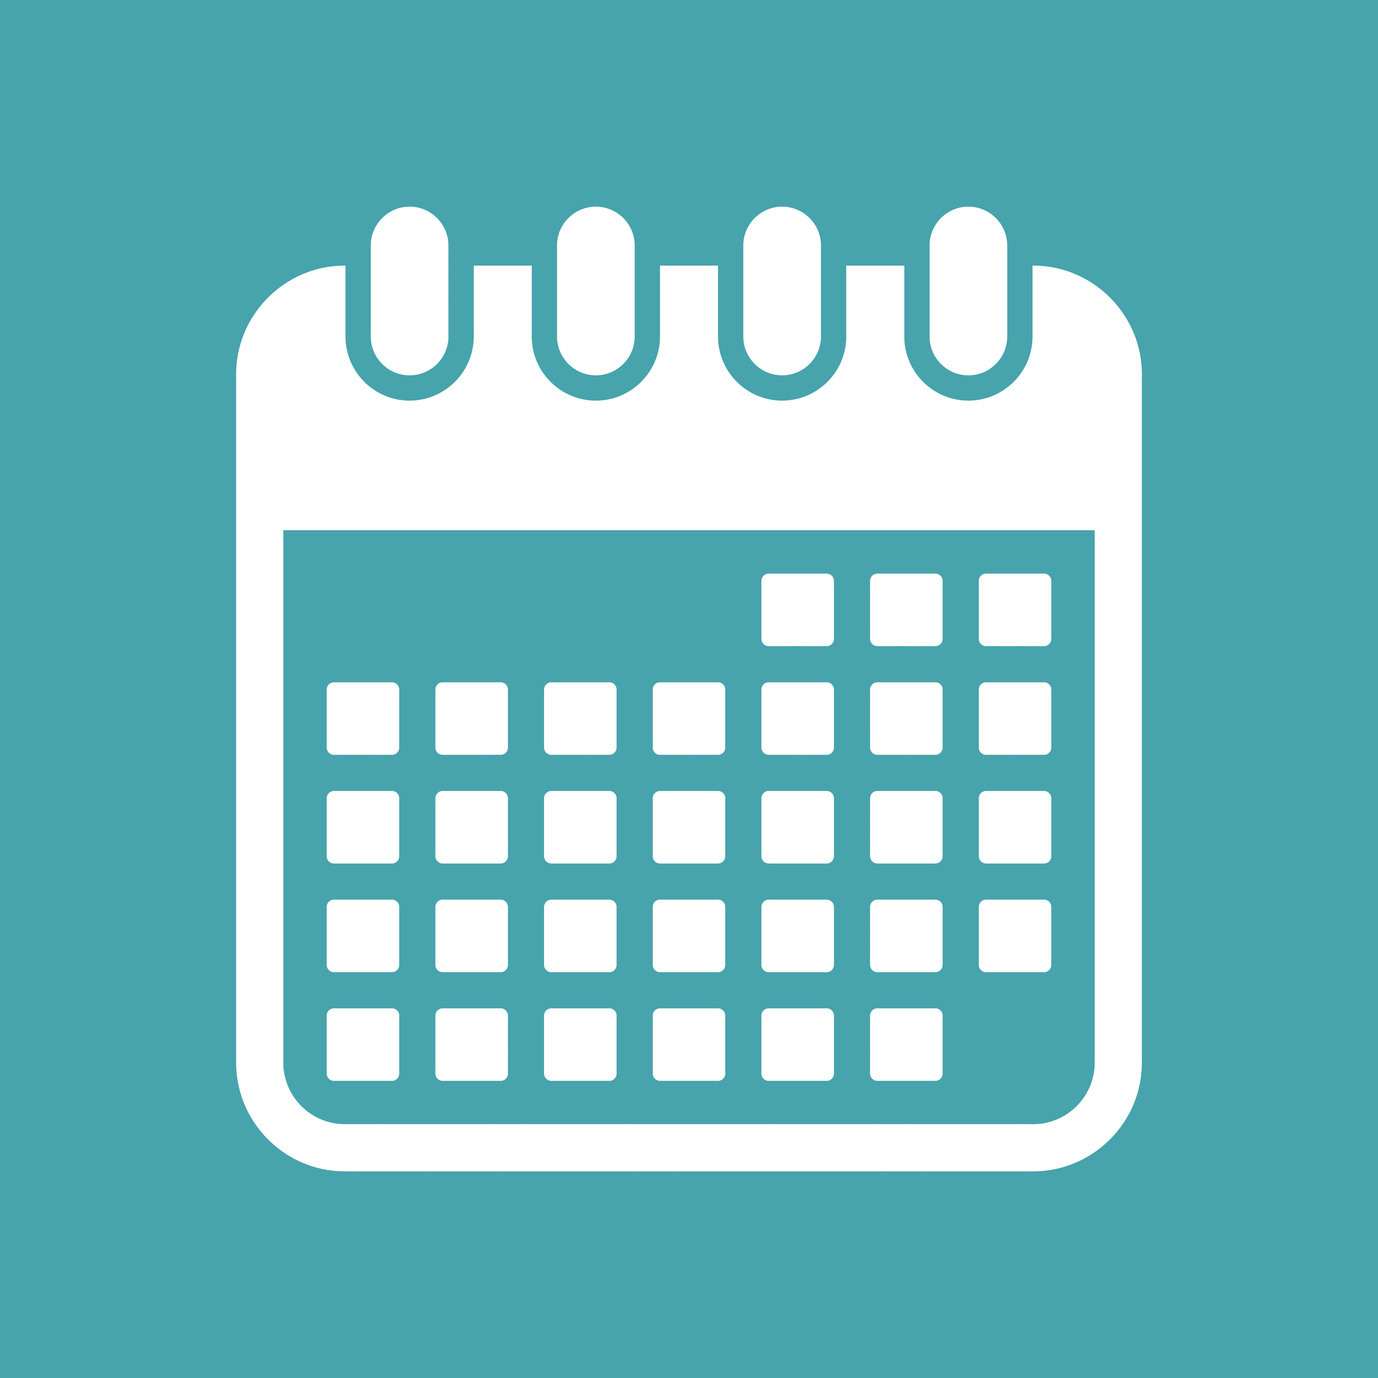 National-Audit-Office-Calendar-of-Events-image